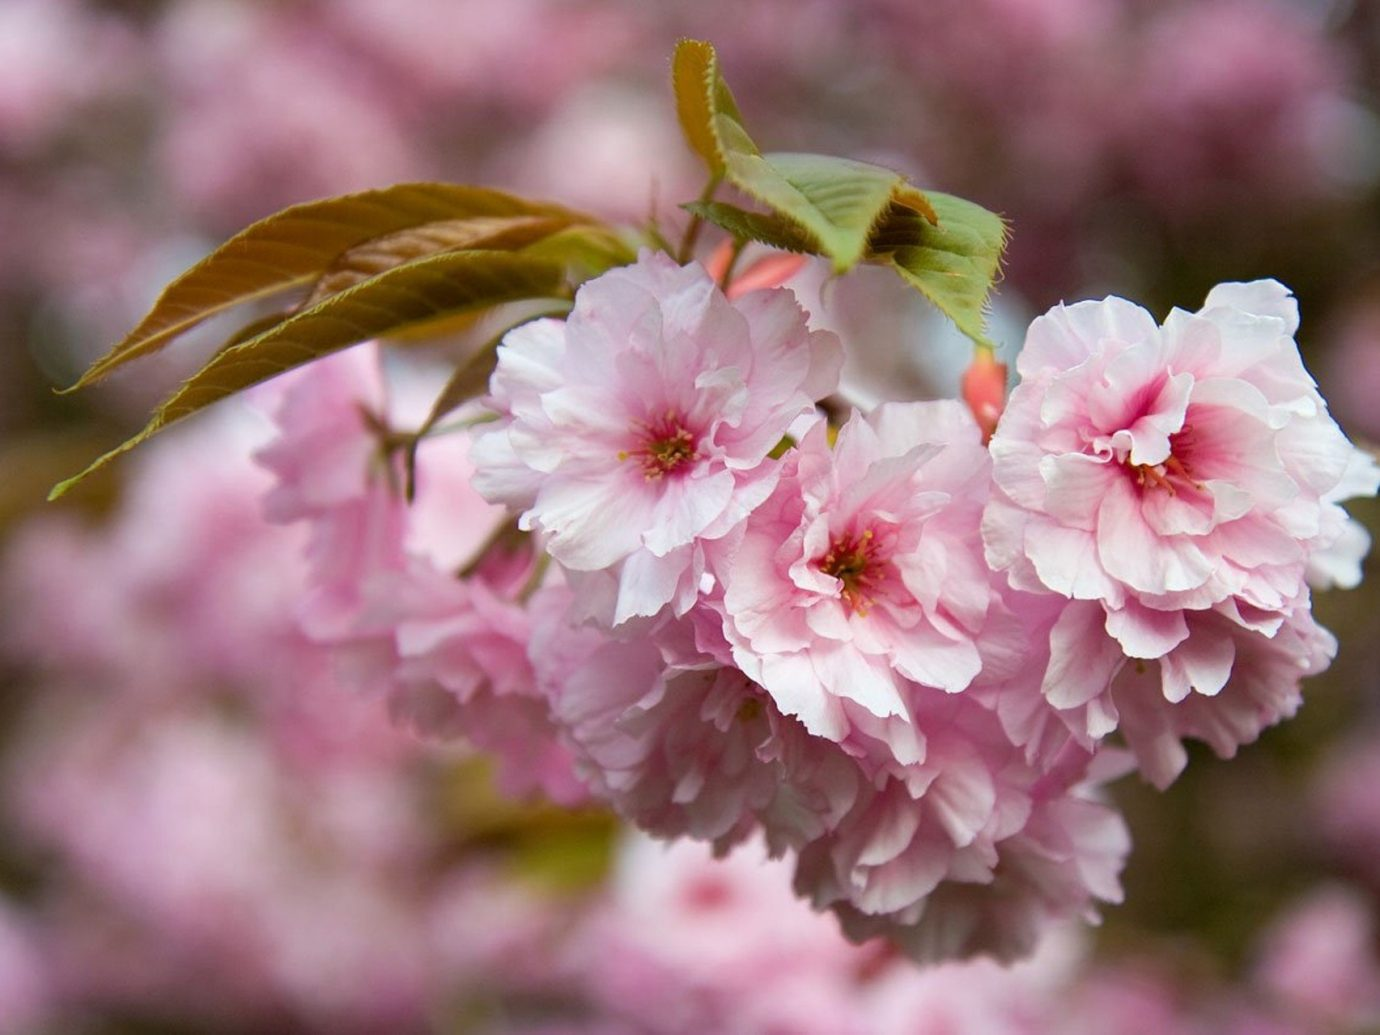 calm detail flowers Garden Nature Offbeat park pink remote serene flower blossom plant flora botany macro photography cherry blossom branch close up land plant produce food petal spring leaf fruit cherry flowering plant rose family shrub close colored